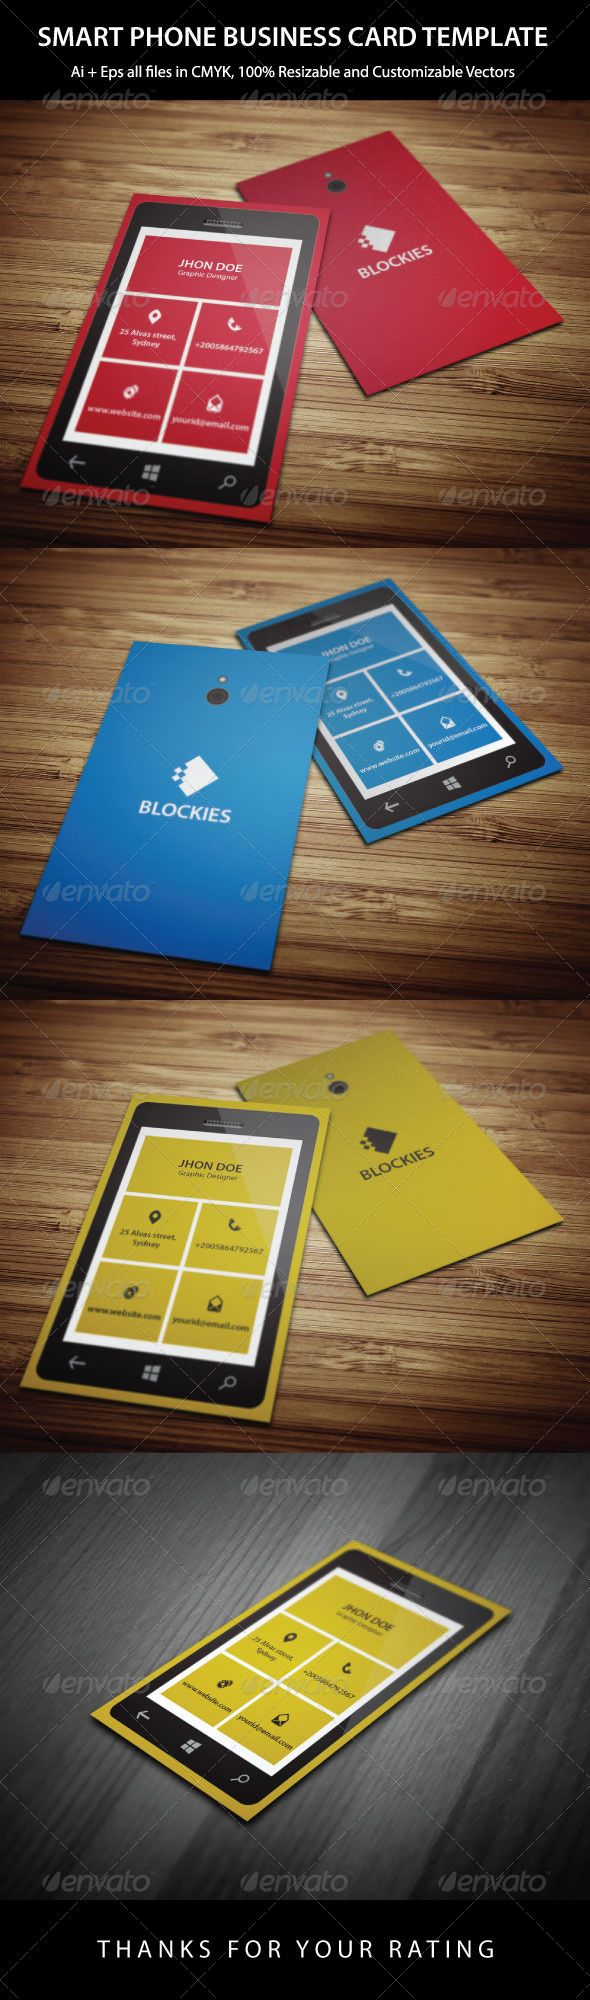 12 best Digital Business Card images on Pinterest | Infographic ...